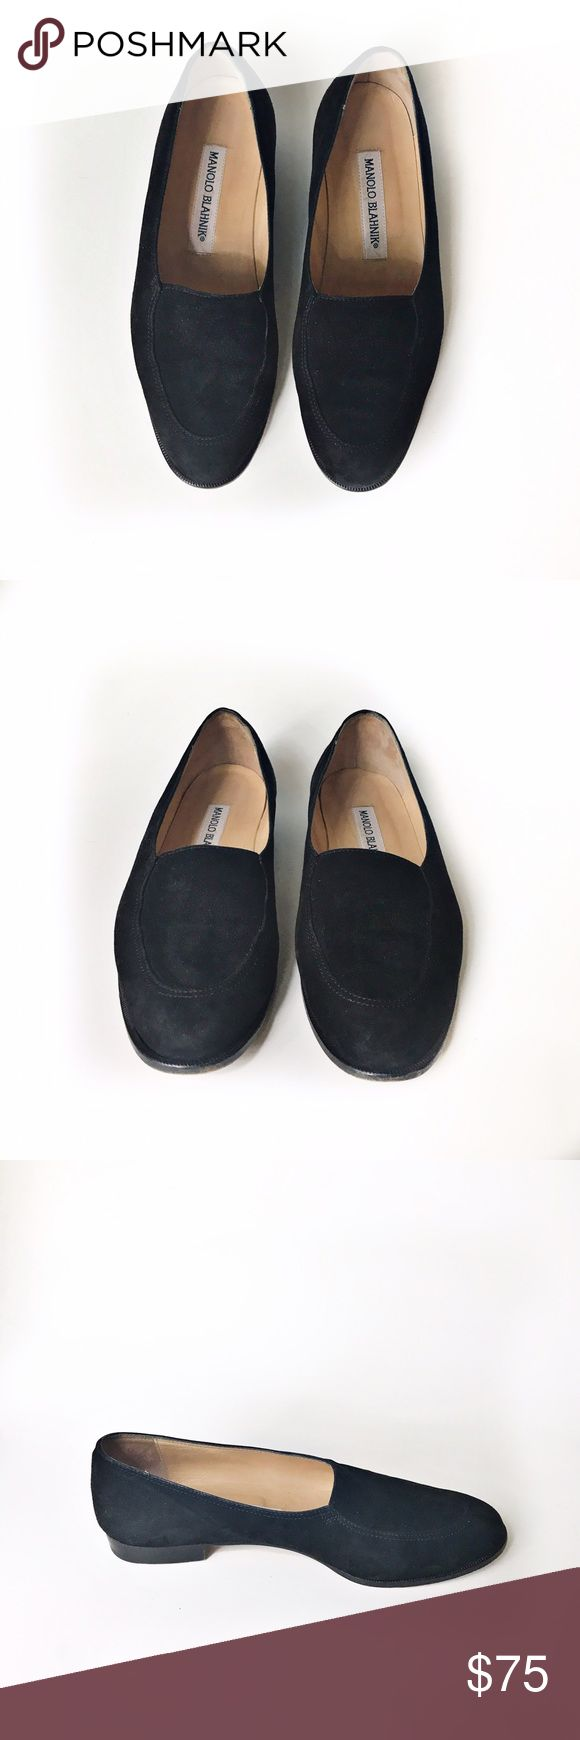 "Manolo Blahnik Black Suede Loafers Gorgeous Manolo Blahnik Black Suede Loafers. Handcrafted. Stacked Heel approximately 0.5"". Lined with smooth leather. Slip-on ease. Euro size 37.5. Made in Italy. 👗👛👠👙👕Bundle & Save! Manolo Blahnik Shoes Flats & Loafers"